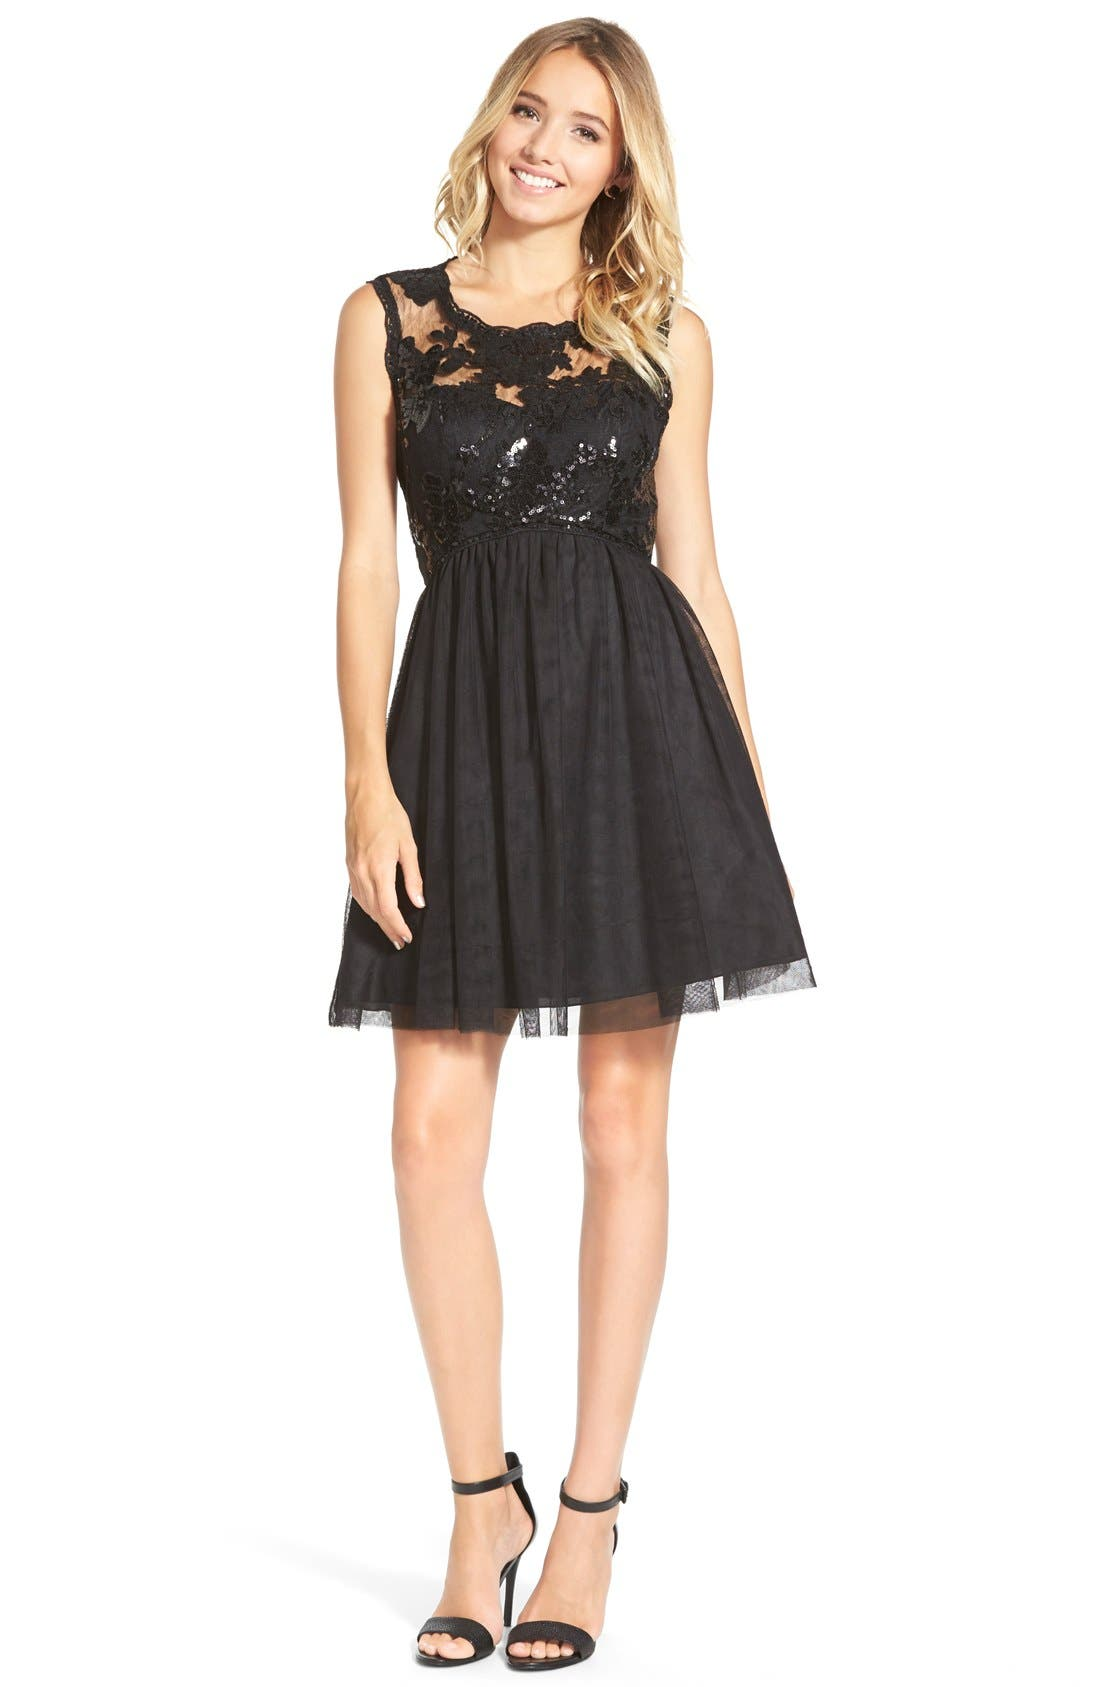 Main Image - Sequin Hearts Sequin Lace Skater Dress